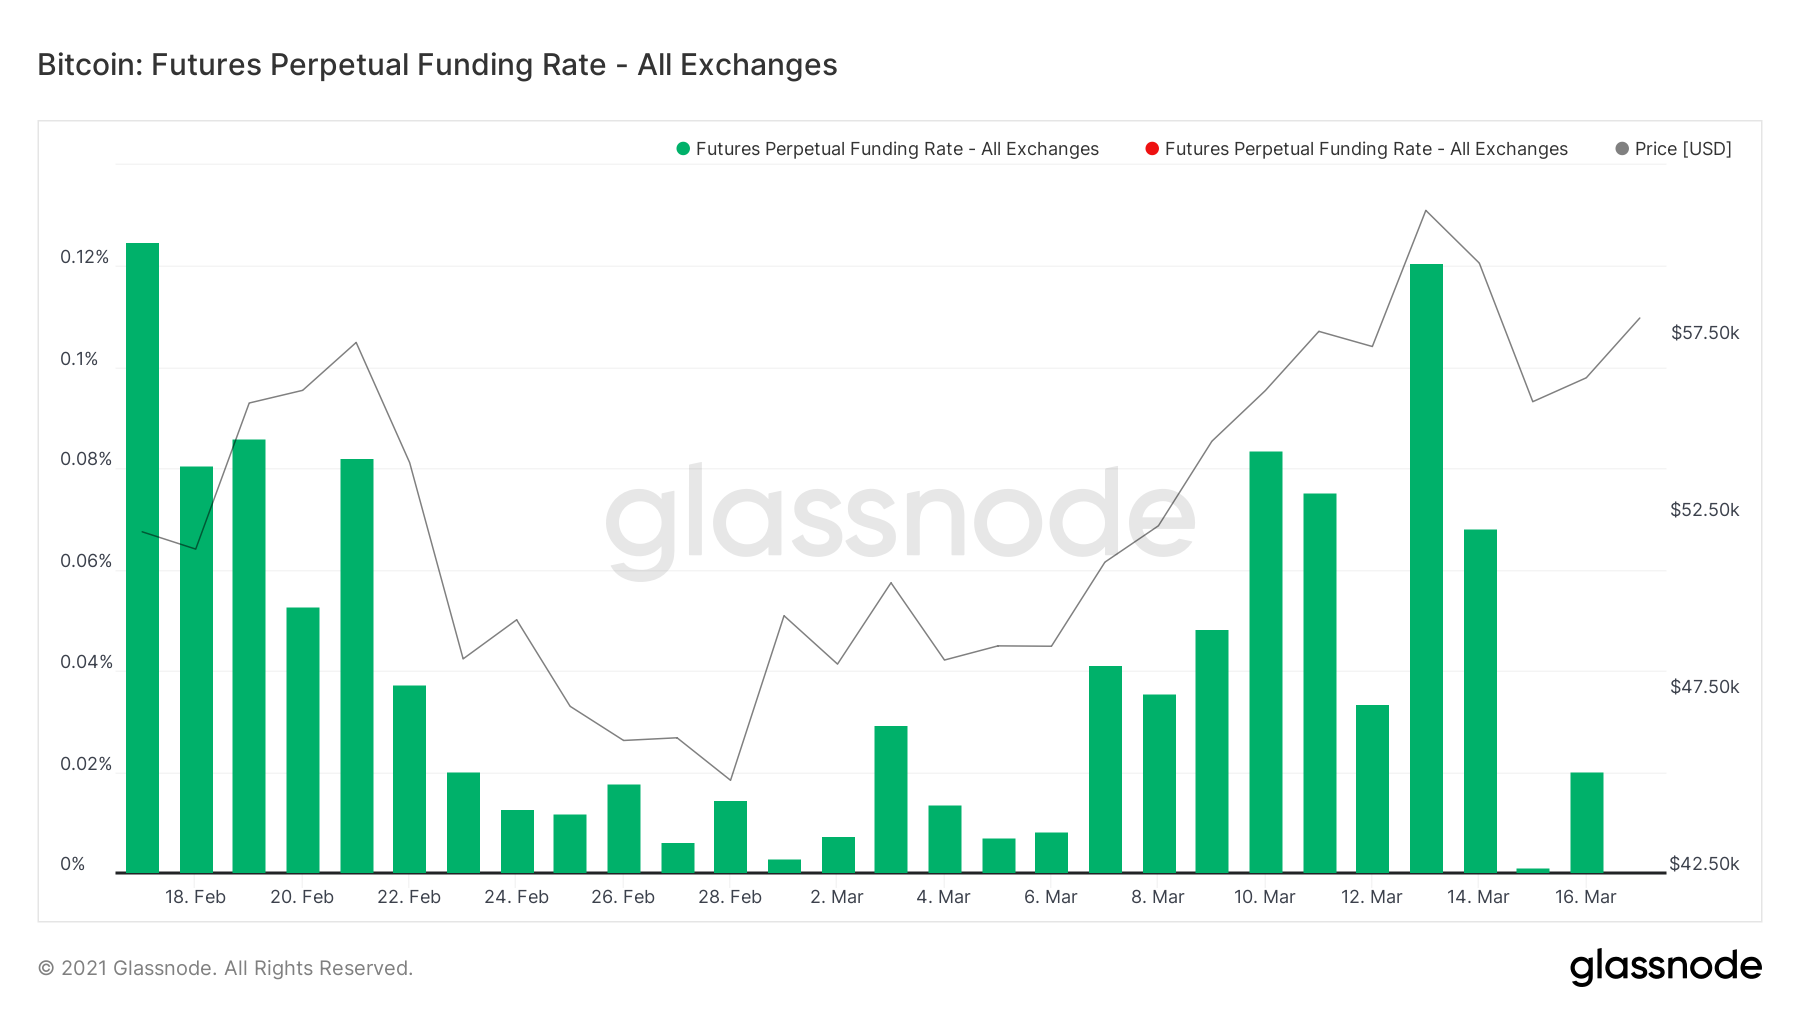 glassnode studio bitcoin futures perpetual funding rate all exchanges 1